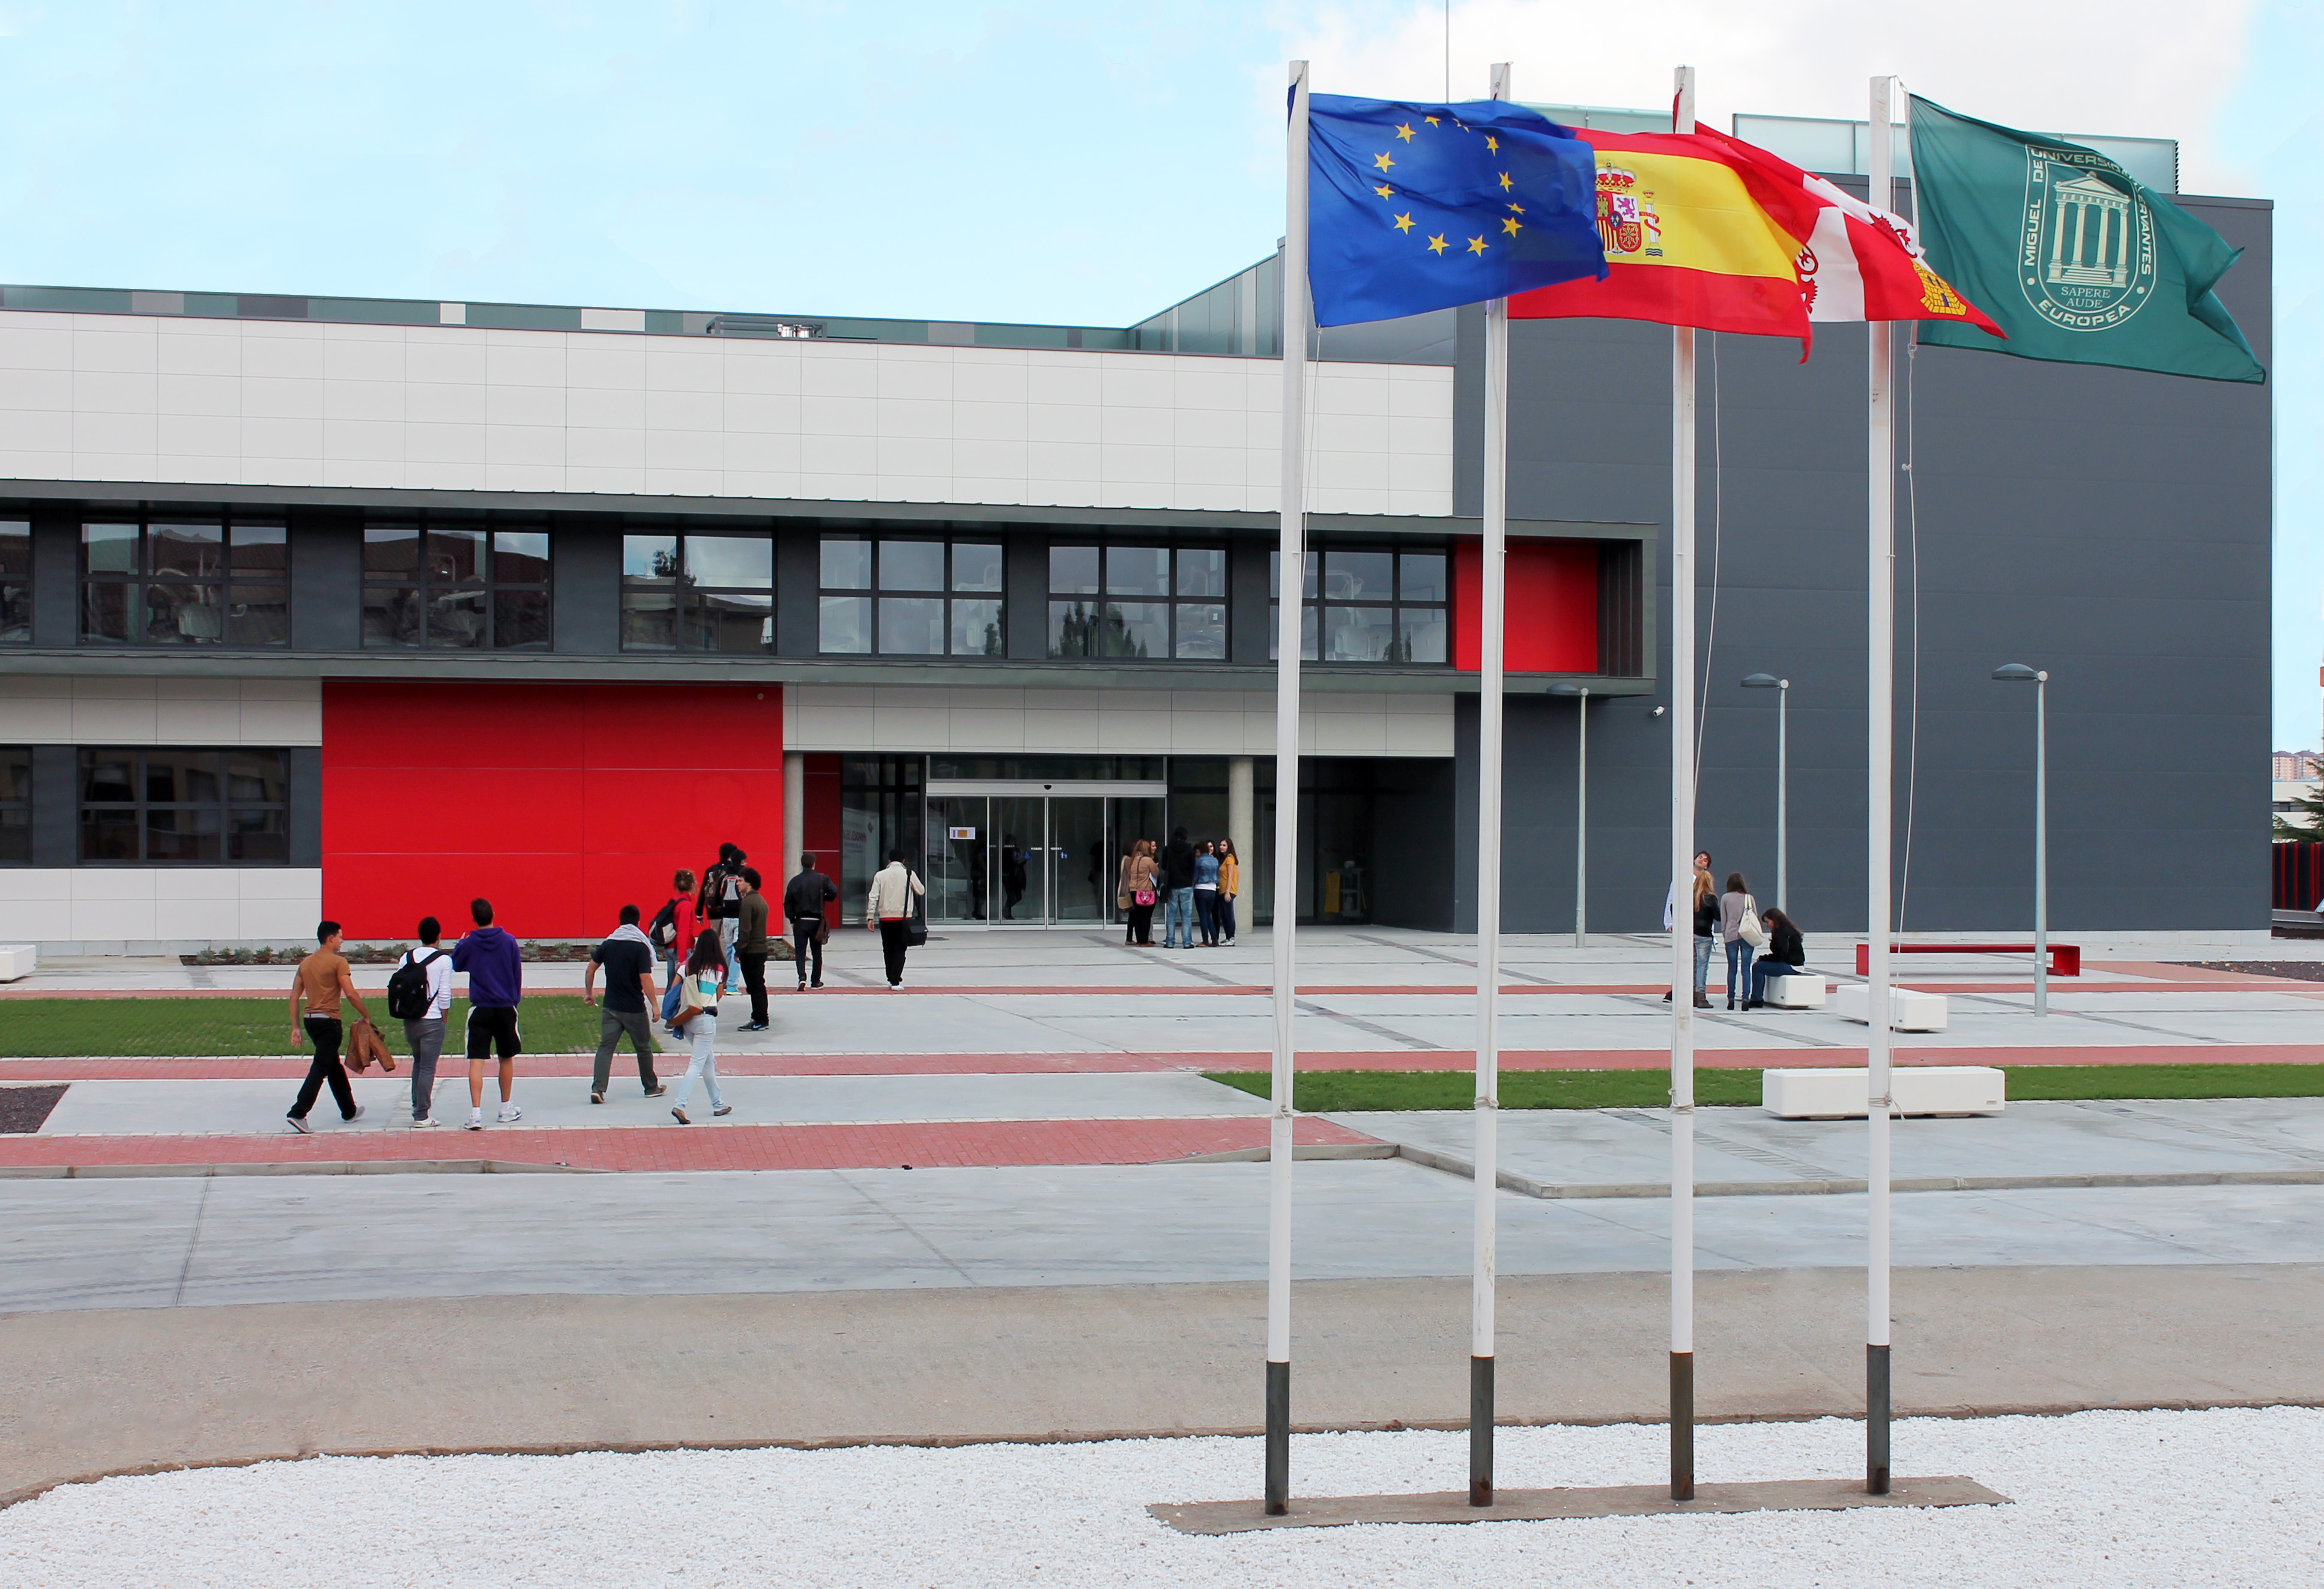 universidad europea miguel de cervantes 2